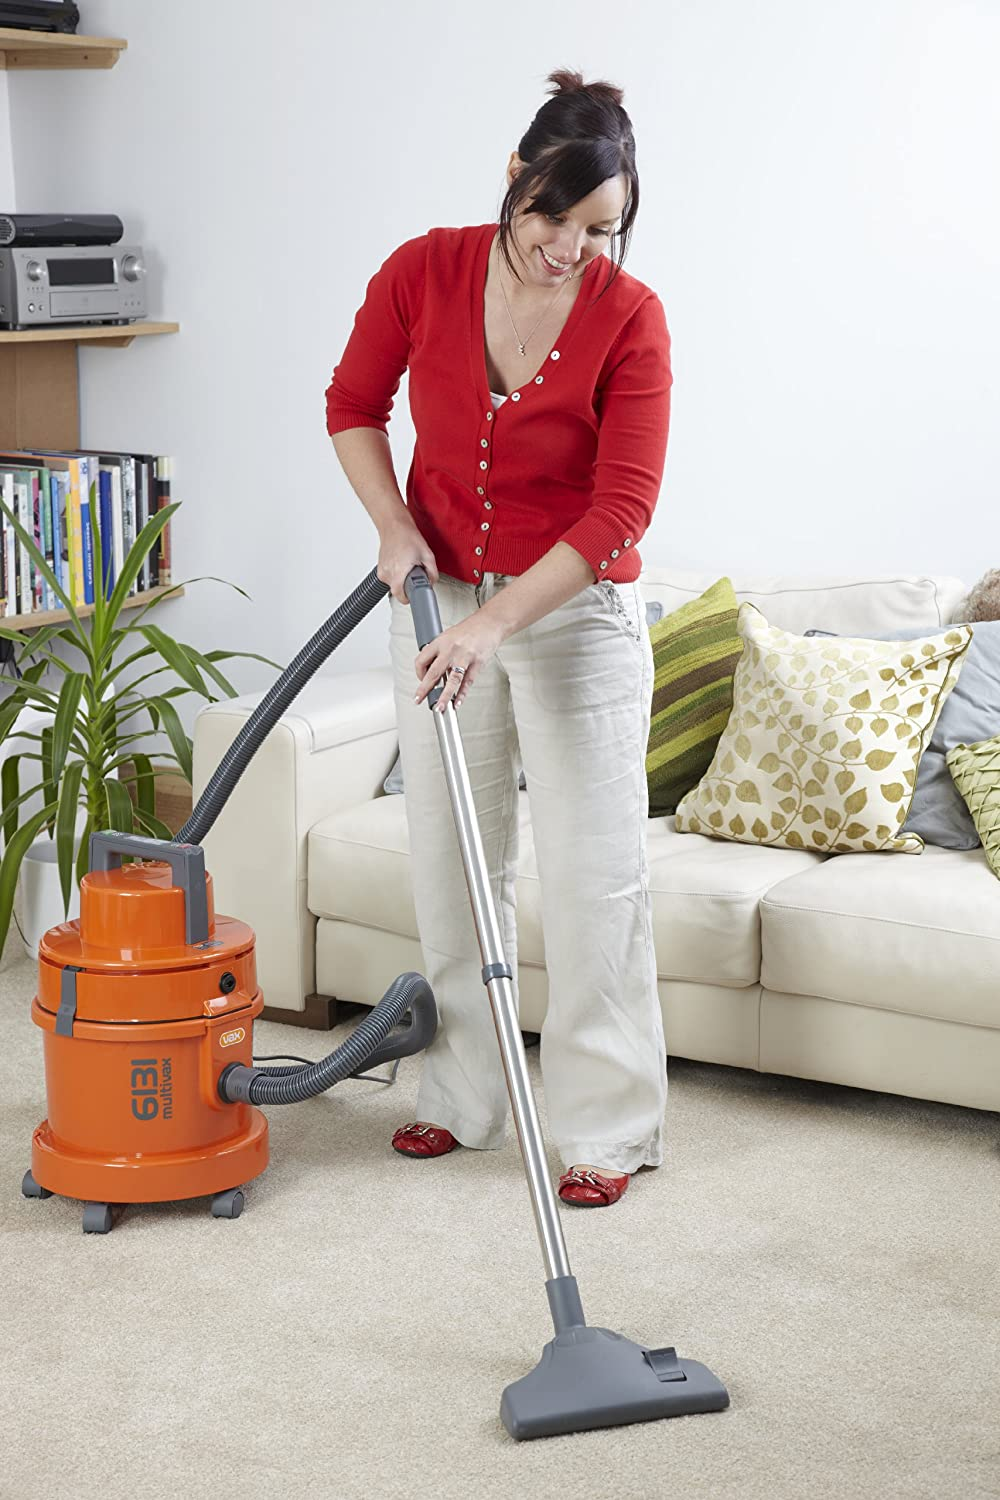 Vax 6131t 3 In 1 Multivax Wet Amp Dry Vacuum Hoover And